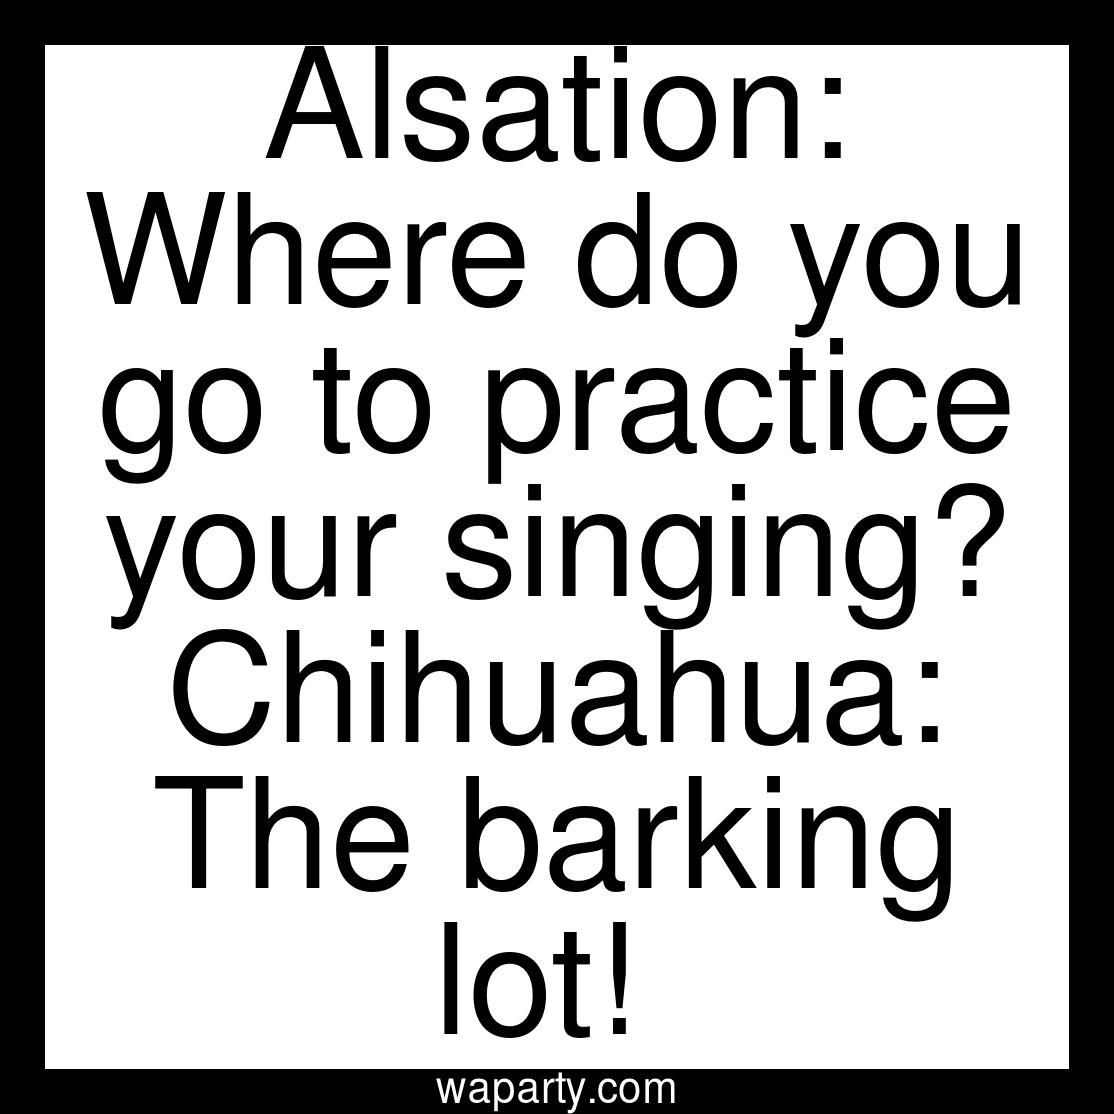 Alsation: Where do you go to practice your singing? Chihuahua: The barking lot!